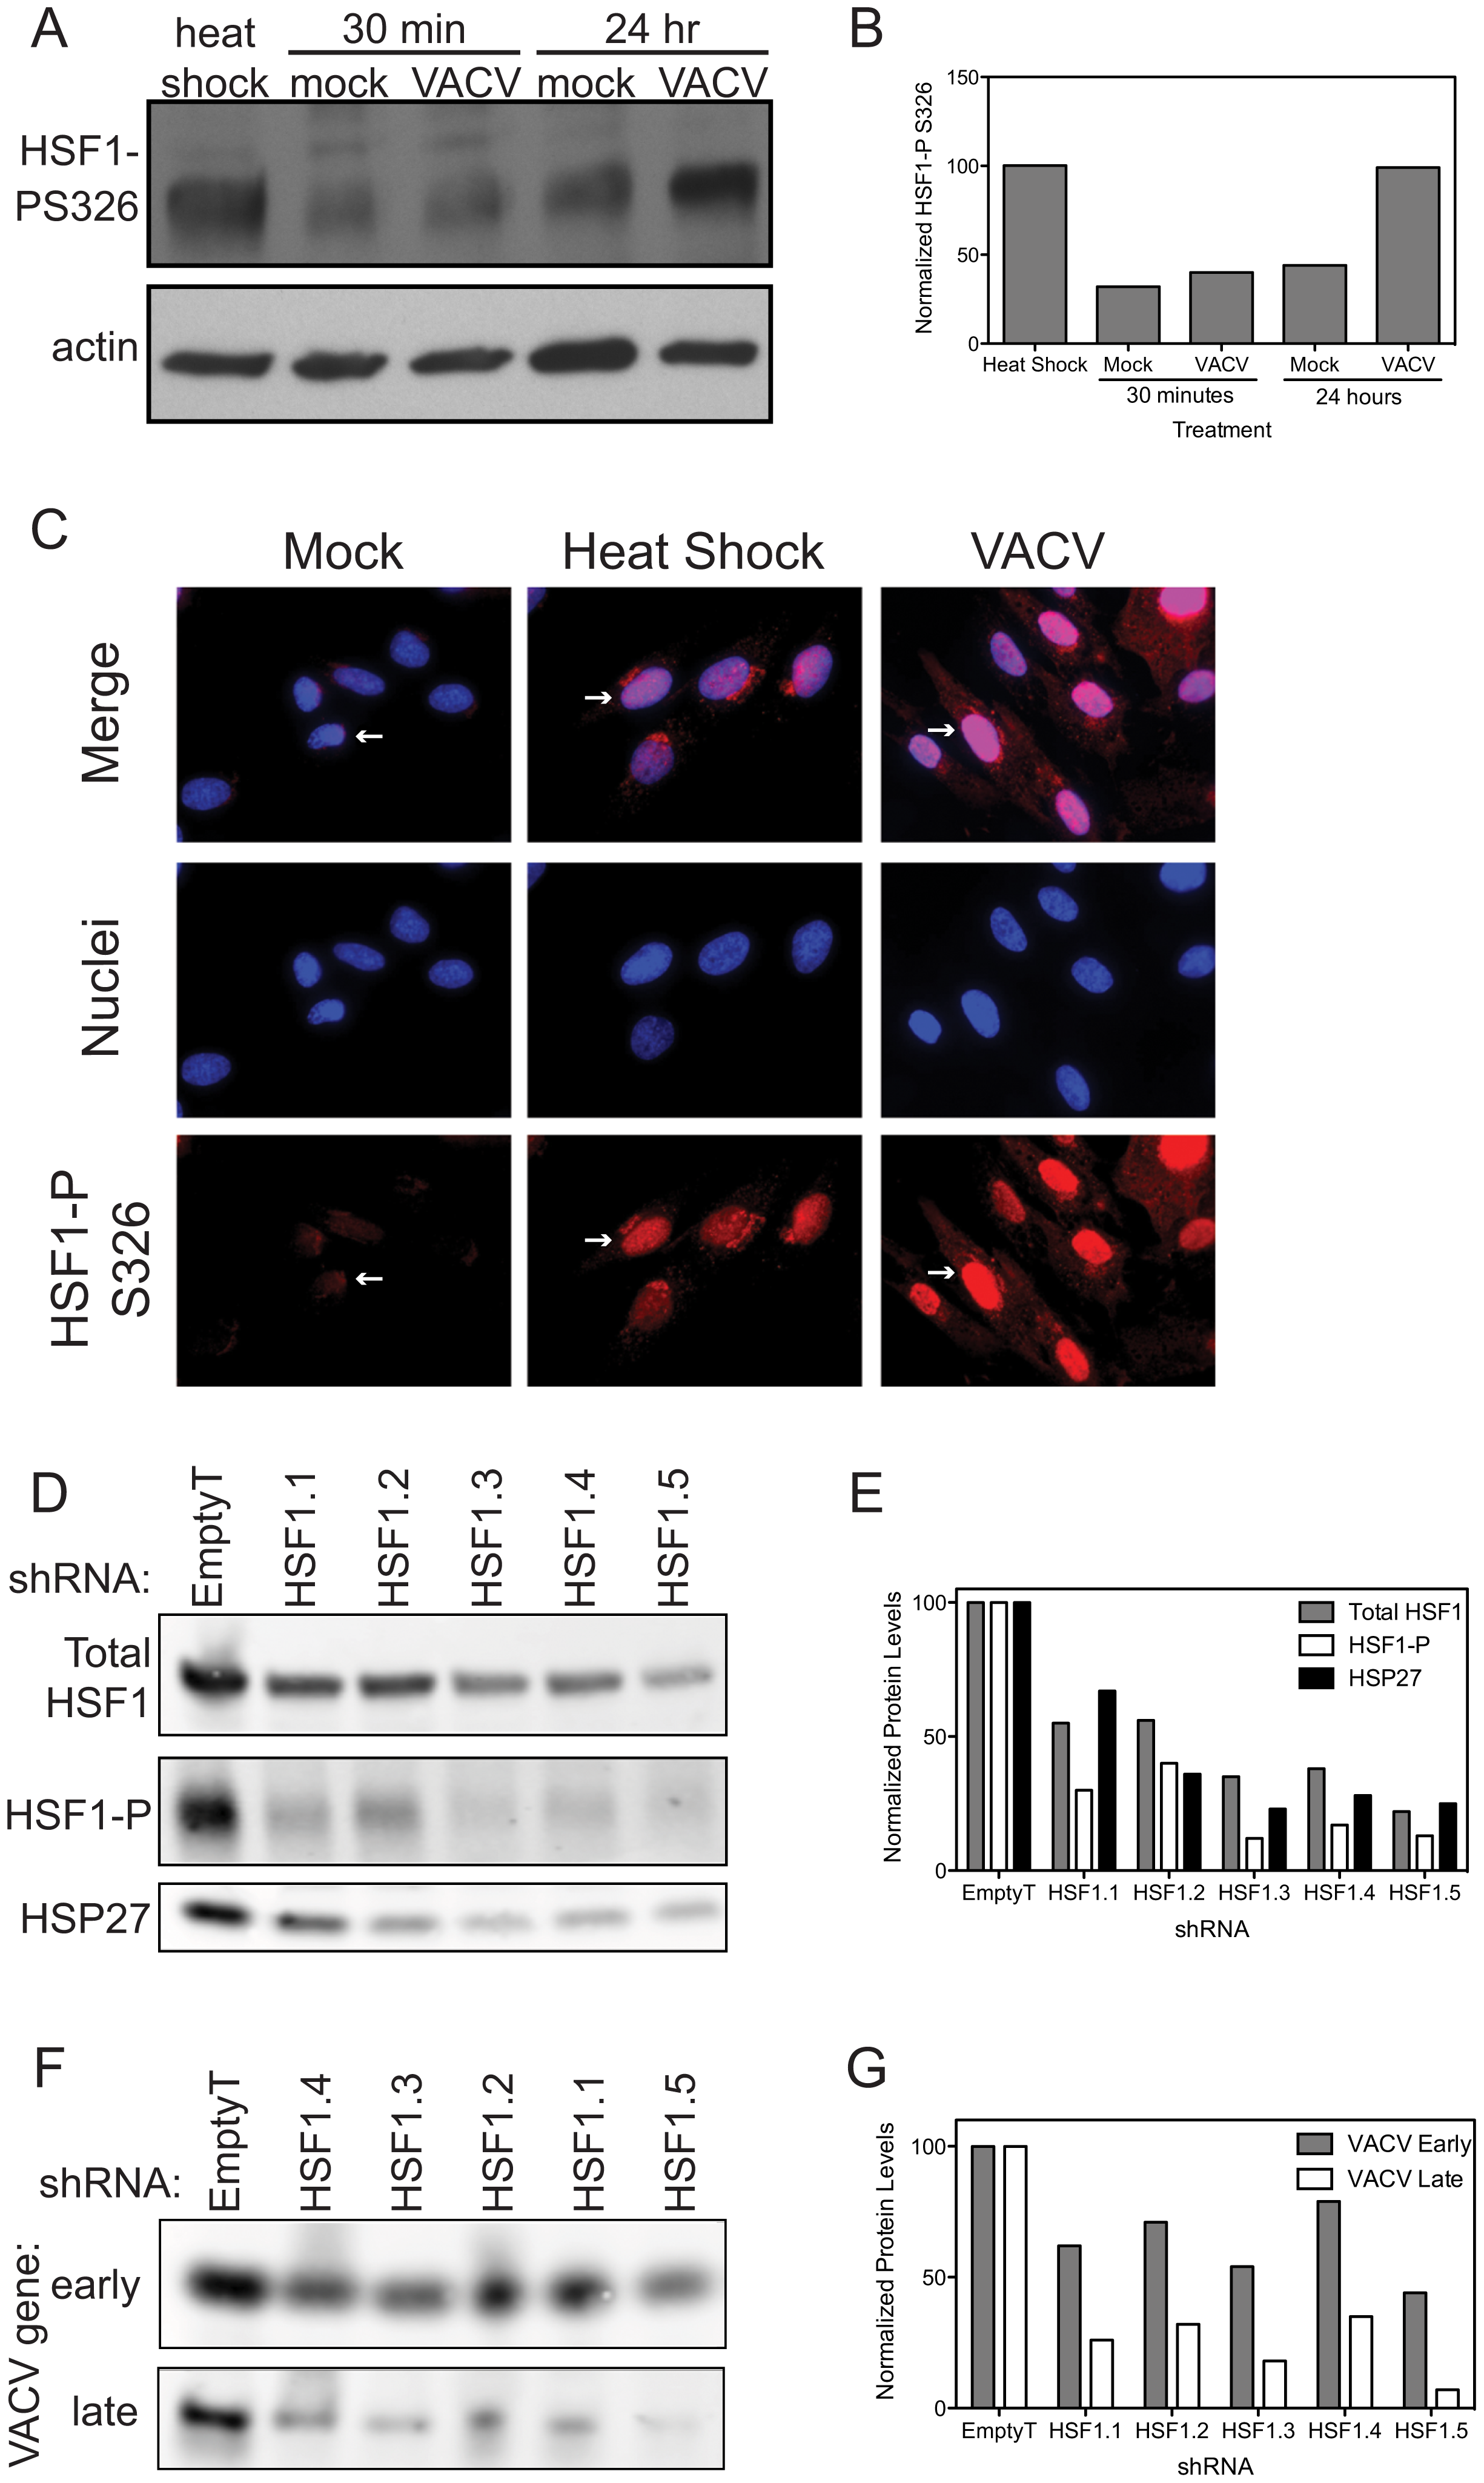 HSF1 is activated during VACV infection.